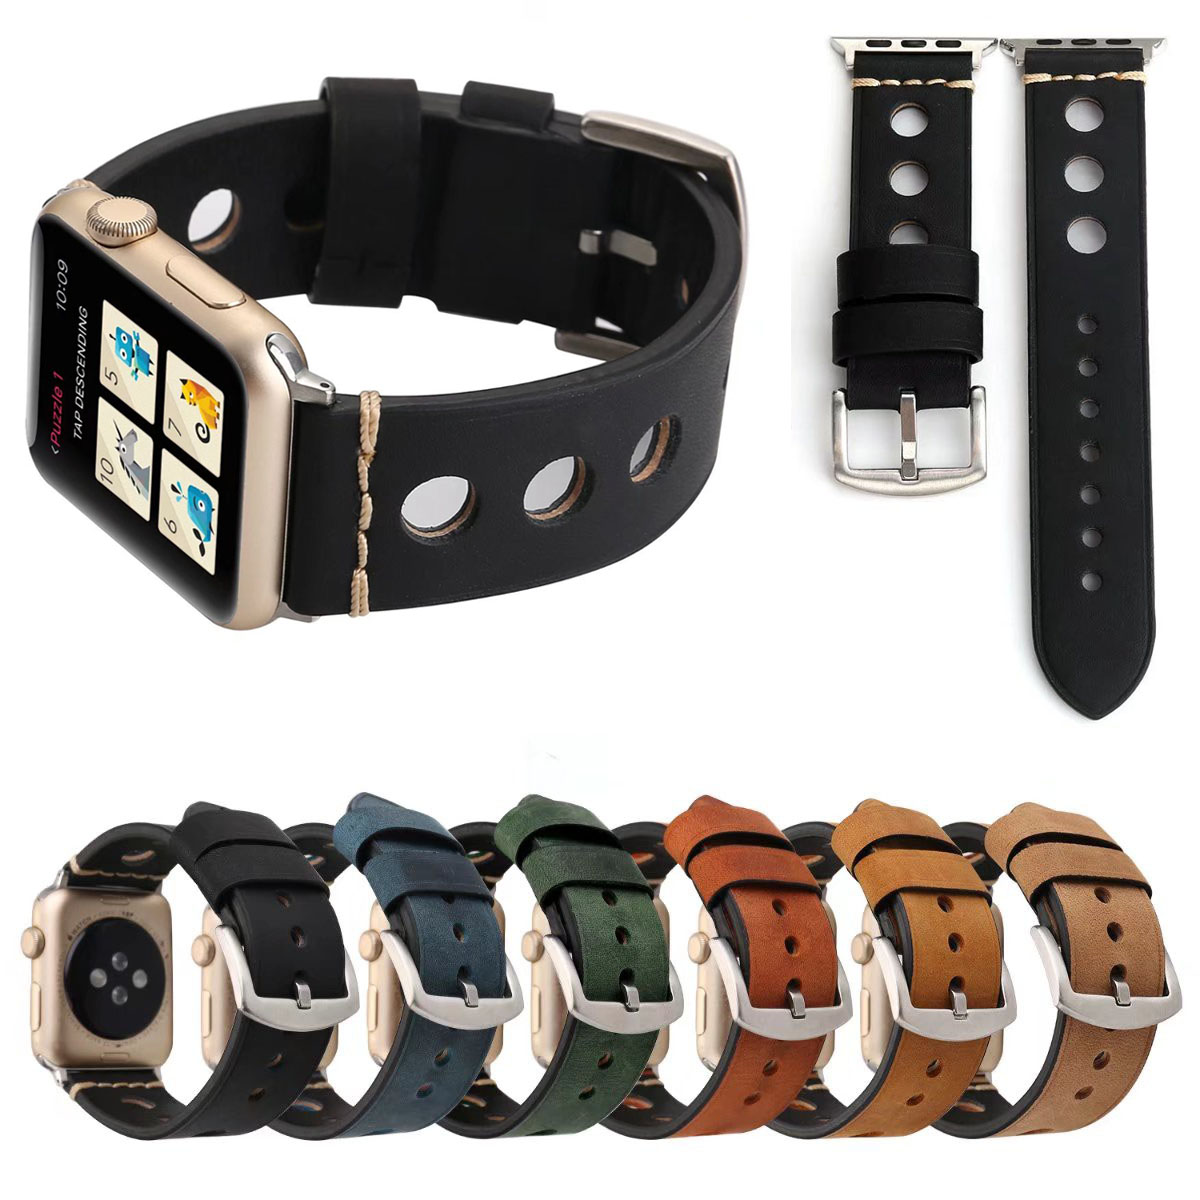 Big Round Hole Breathable Wrist Strap Bracelet for Apple Watch Series 3 2 1 Band 42mm 38mm Retro Genuine Leather Watch Band round up 1 2 3